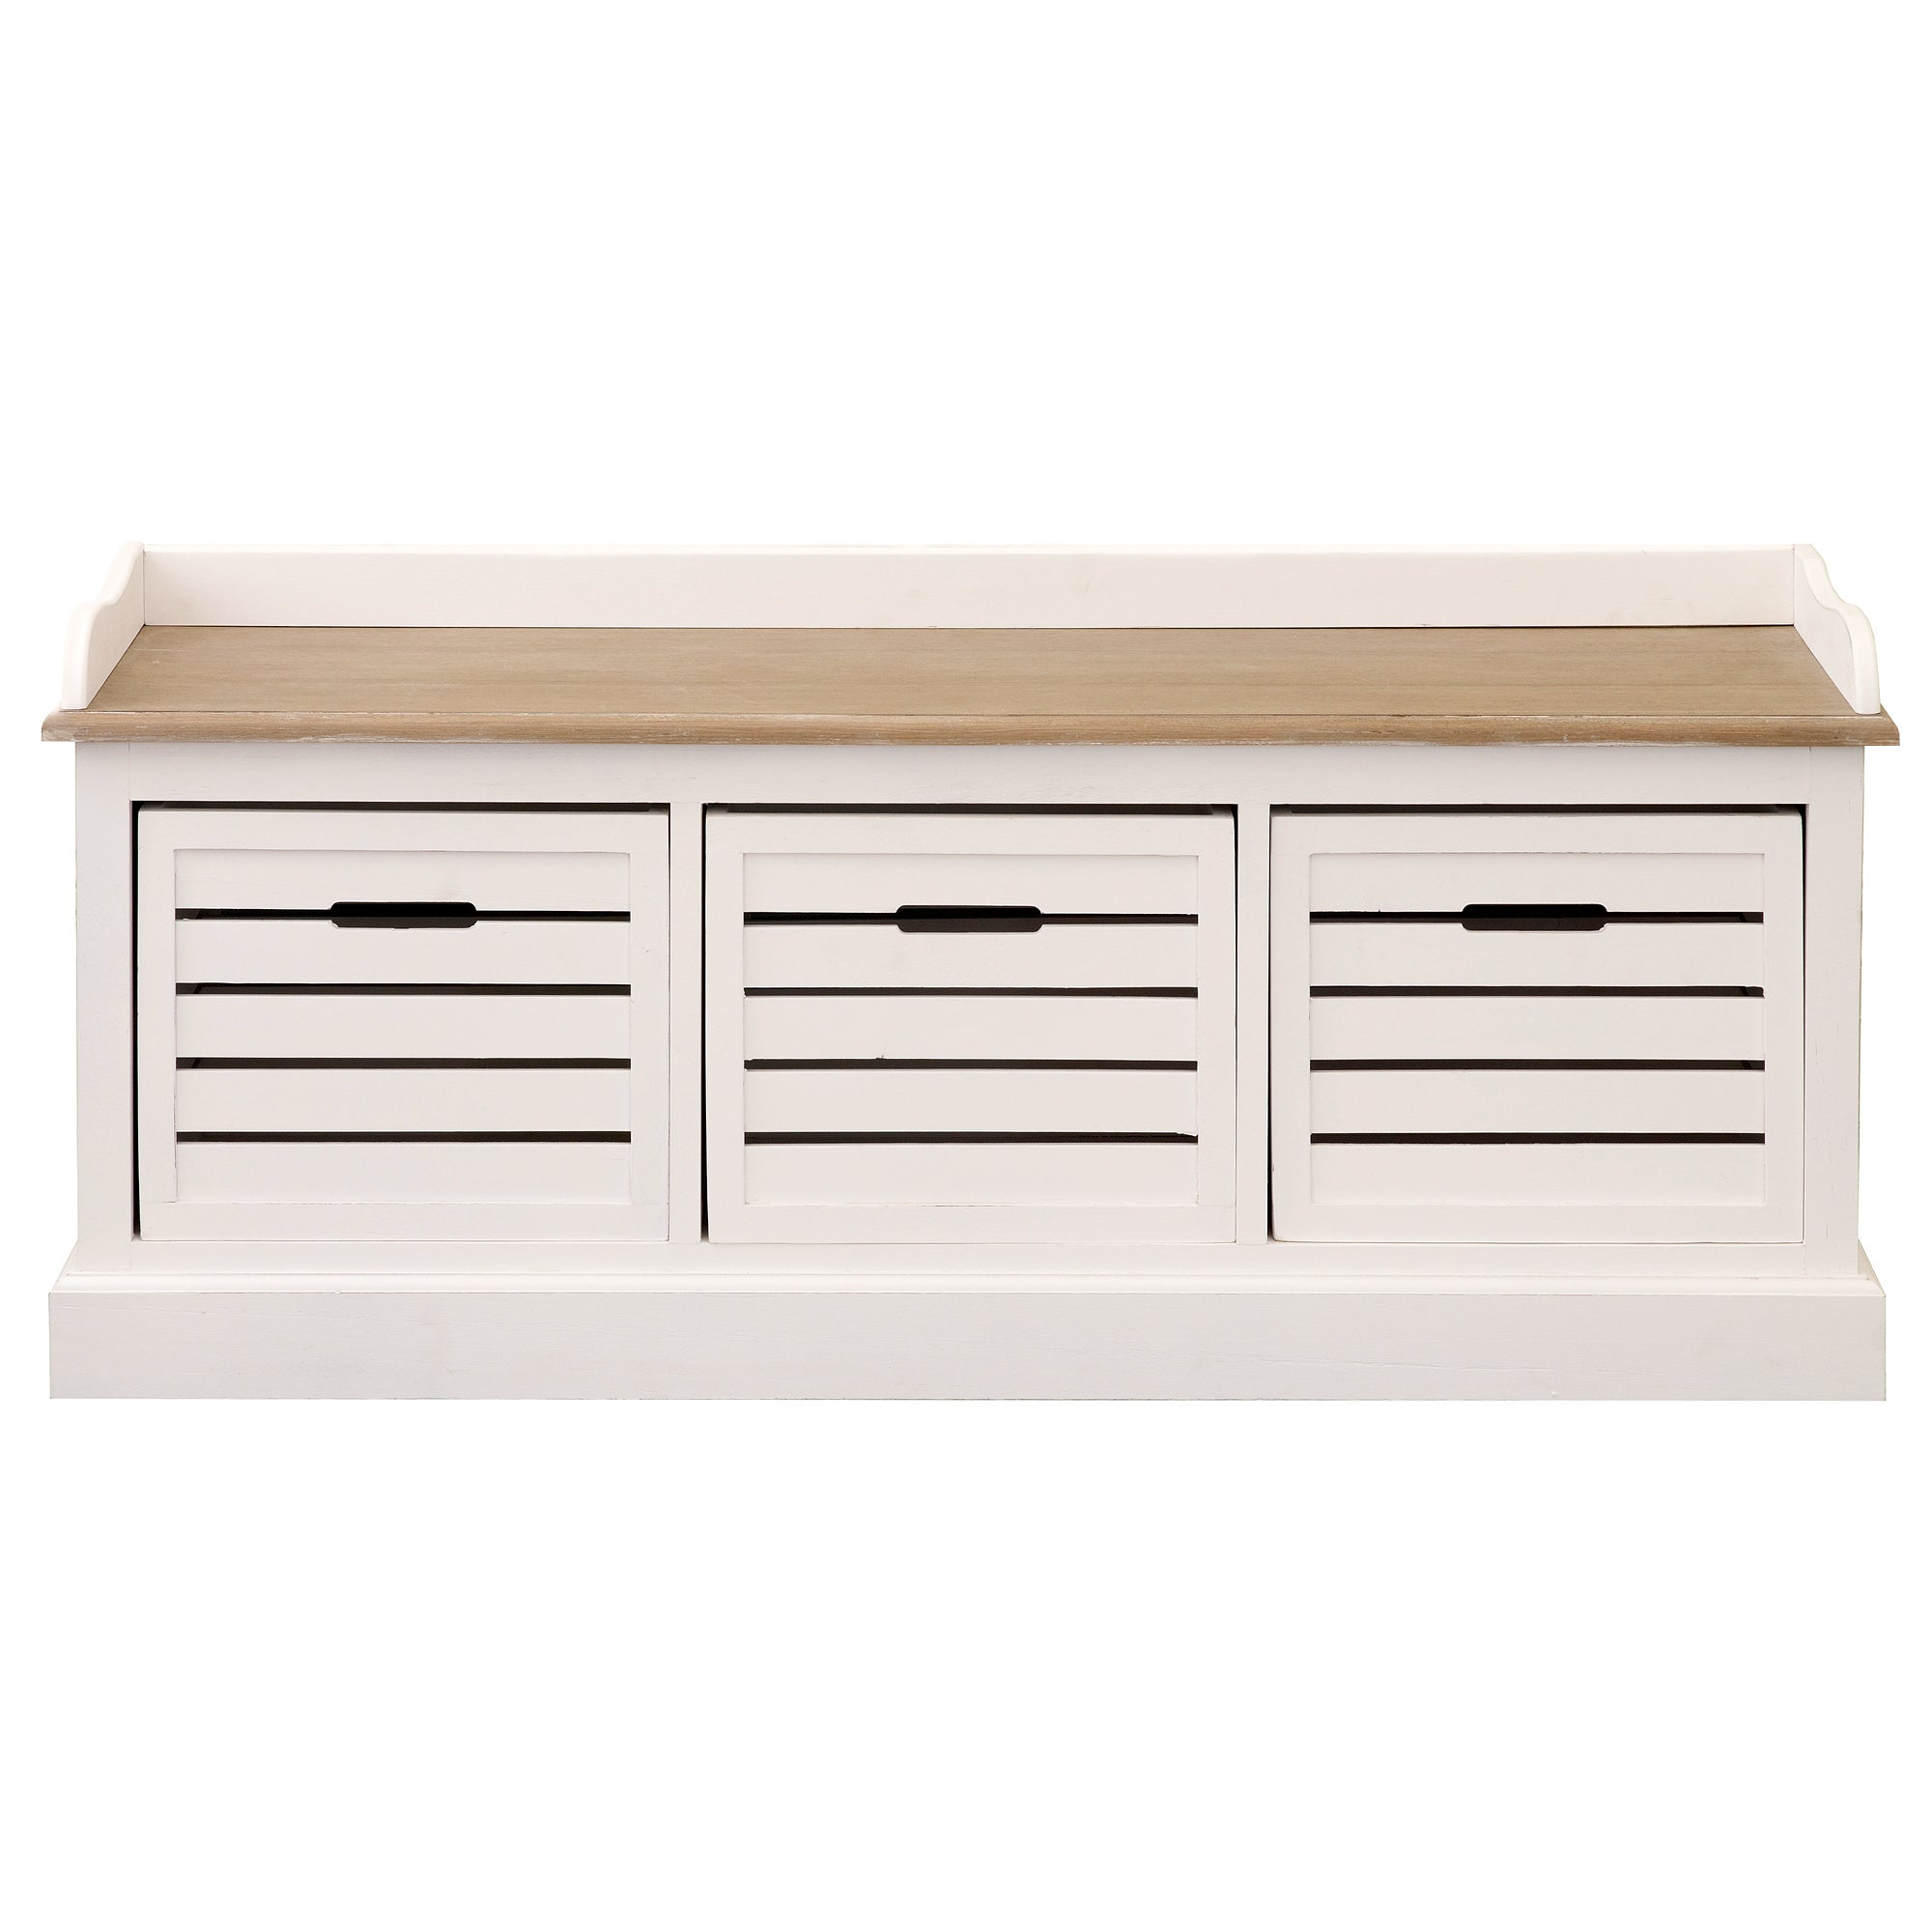 Bretagne White 3 Drawer Storage Bench